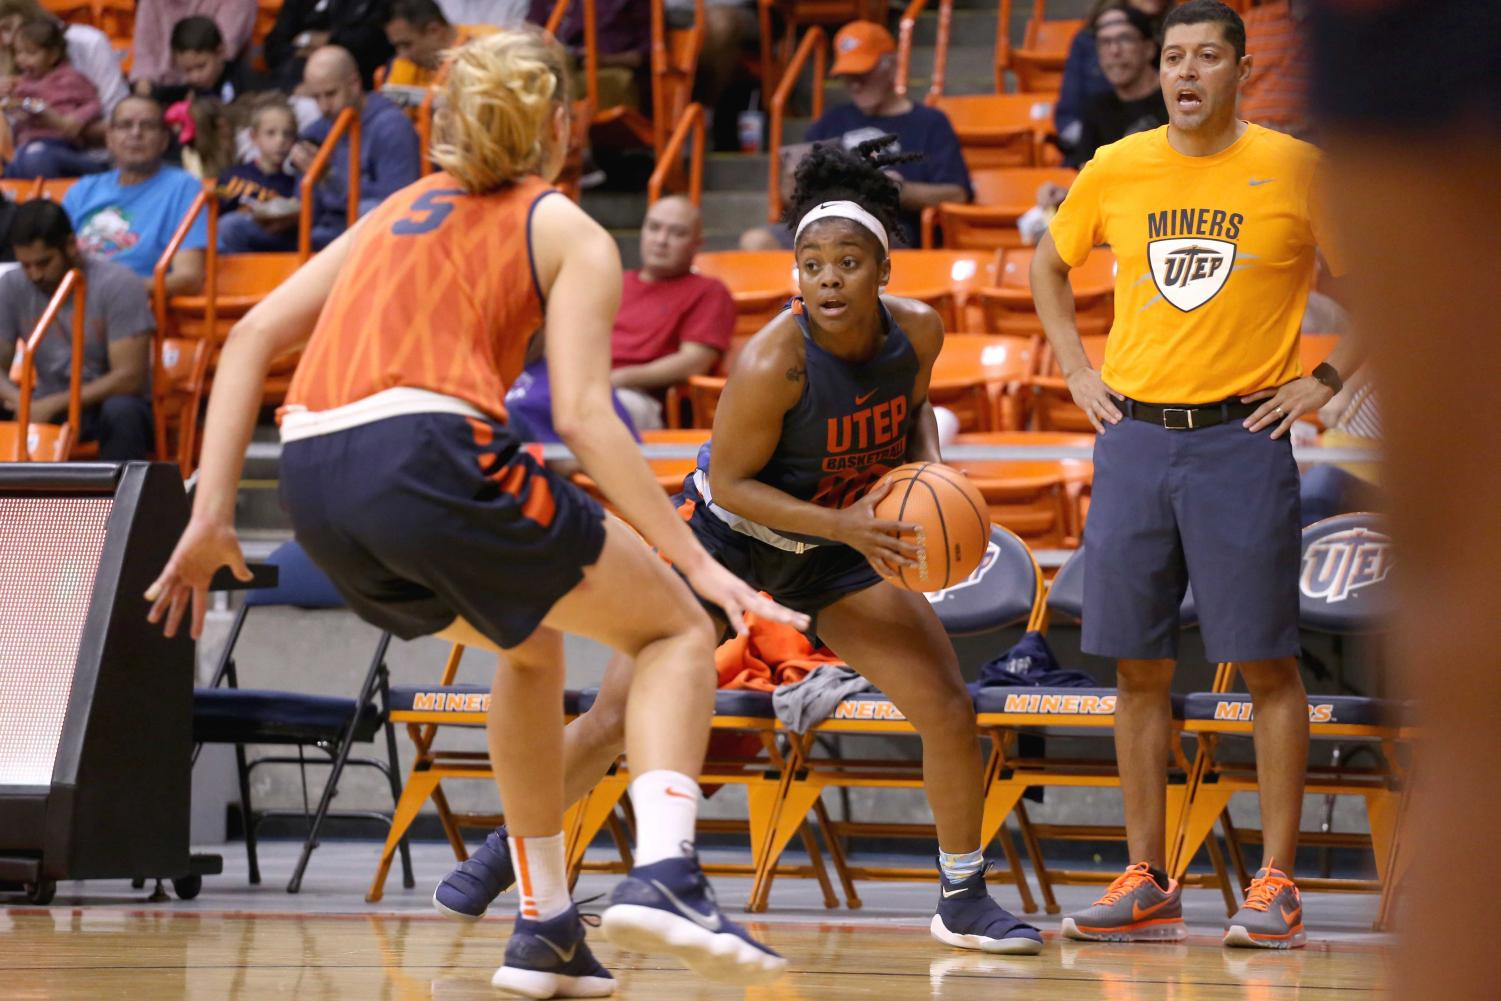 Sophomore+pointguard+Jordan+Jenkins+looks+to+make+a+pass+around+junior+forward+Zuzanna+Puc++during+the+basketball+pre+season+showcase+at+the+Don+Haskins+Center+on+Wednesday%2C+Oct.+10.+